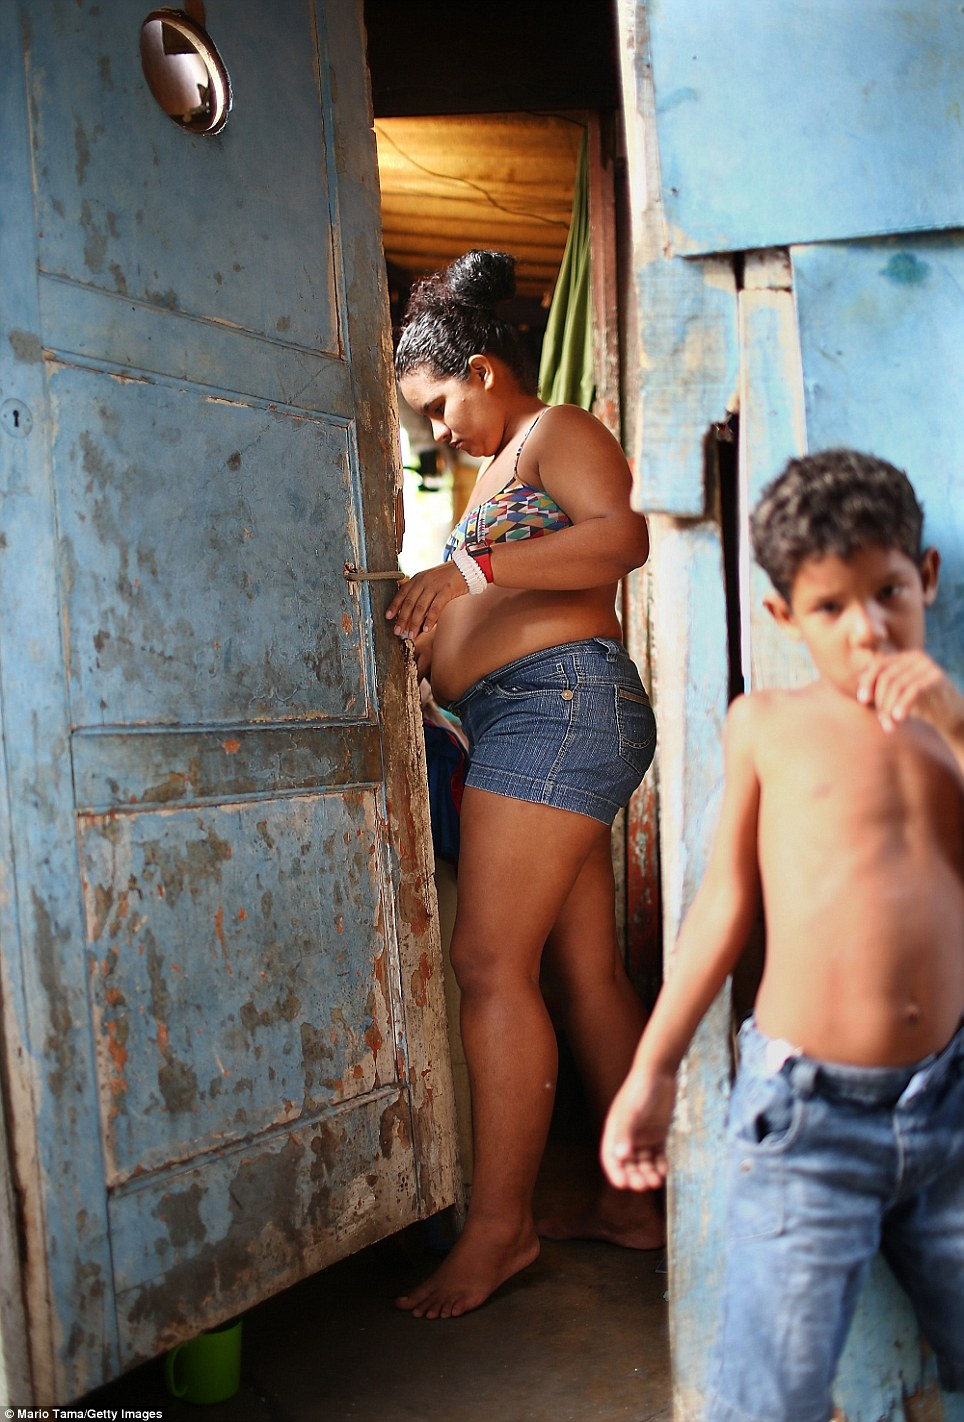 Mother Quiva stands in her home near son Joao Vitor. The police have been the subject of much controversy in the country. Last week. a police headquarters was burned down in a protest against government presence in the favelas